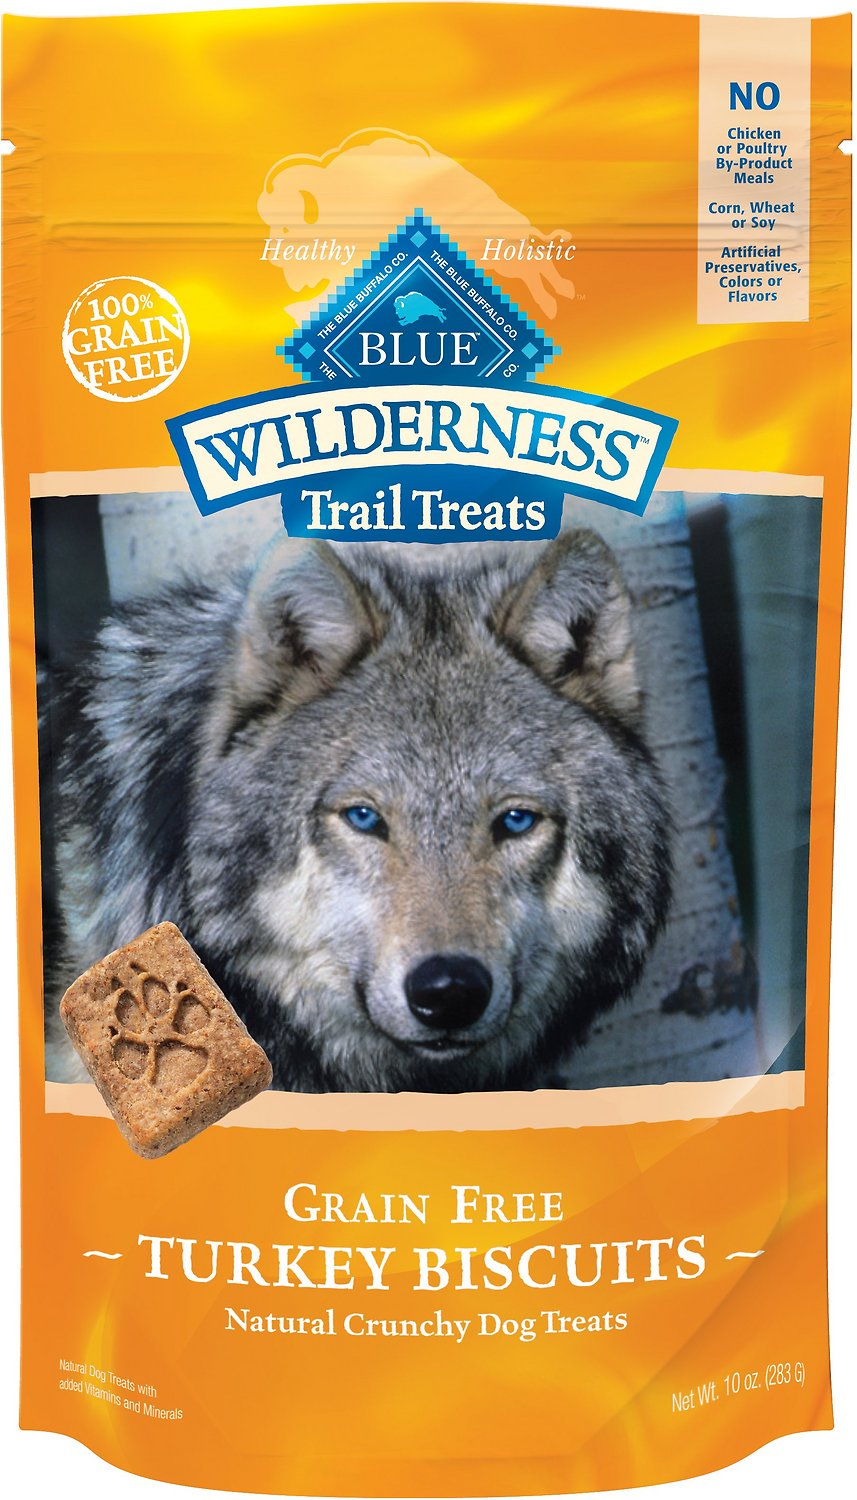 Blue Buffalo Wilderness Trail Treats Turkey Biscuits Grain-Free Dog Treats Image